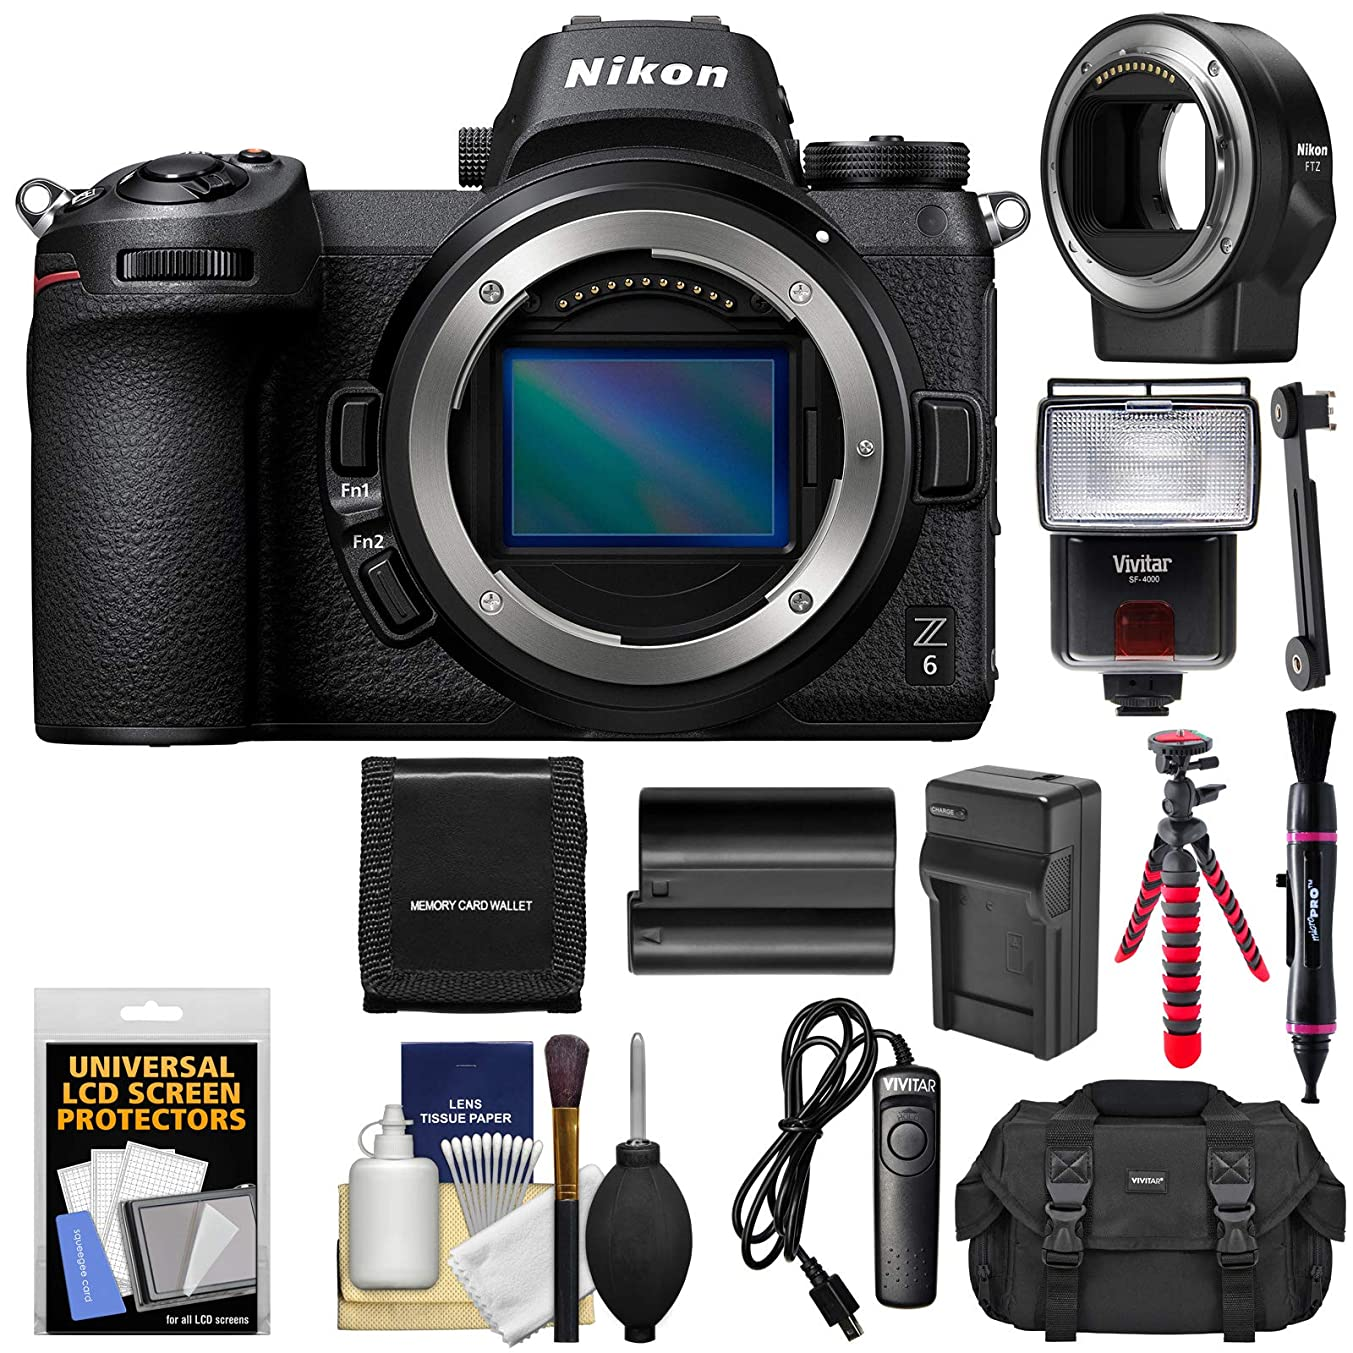 Nikon Z6 Mirrorless Digital Camera Body with Mount Adapter FTZ + Battery & Charger + Case + Tripod + Flash + Remote + Kit